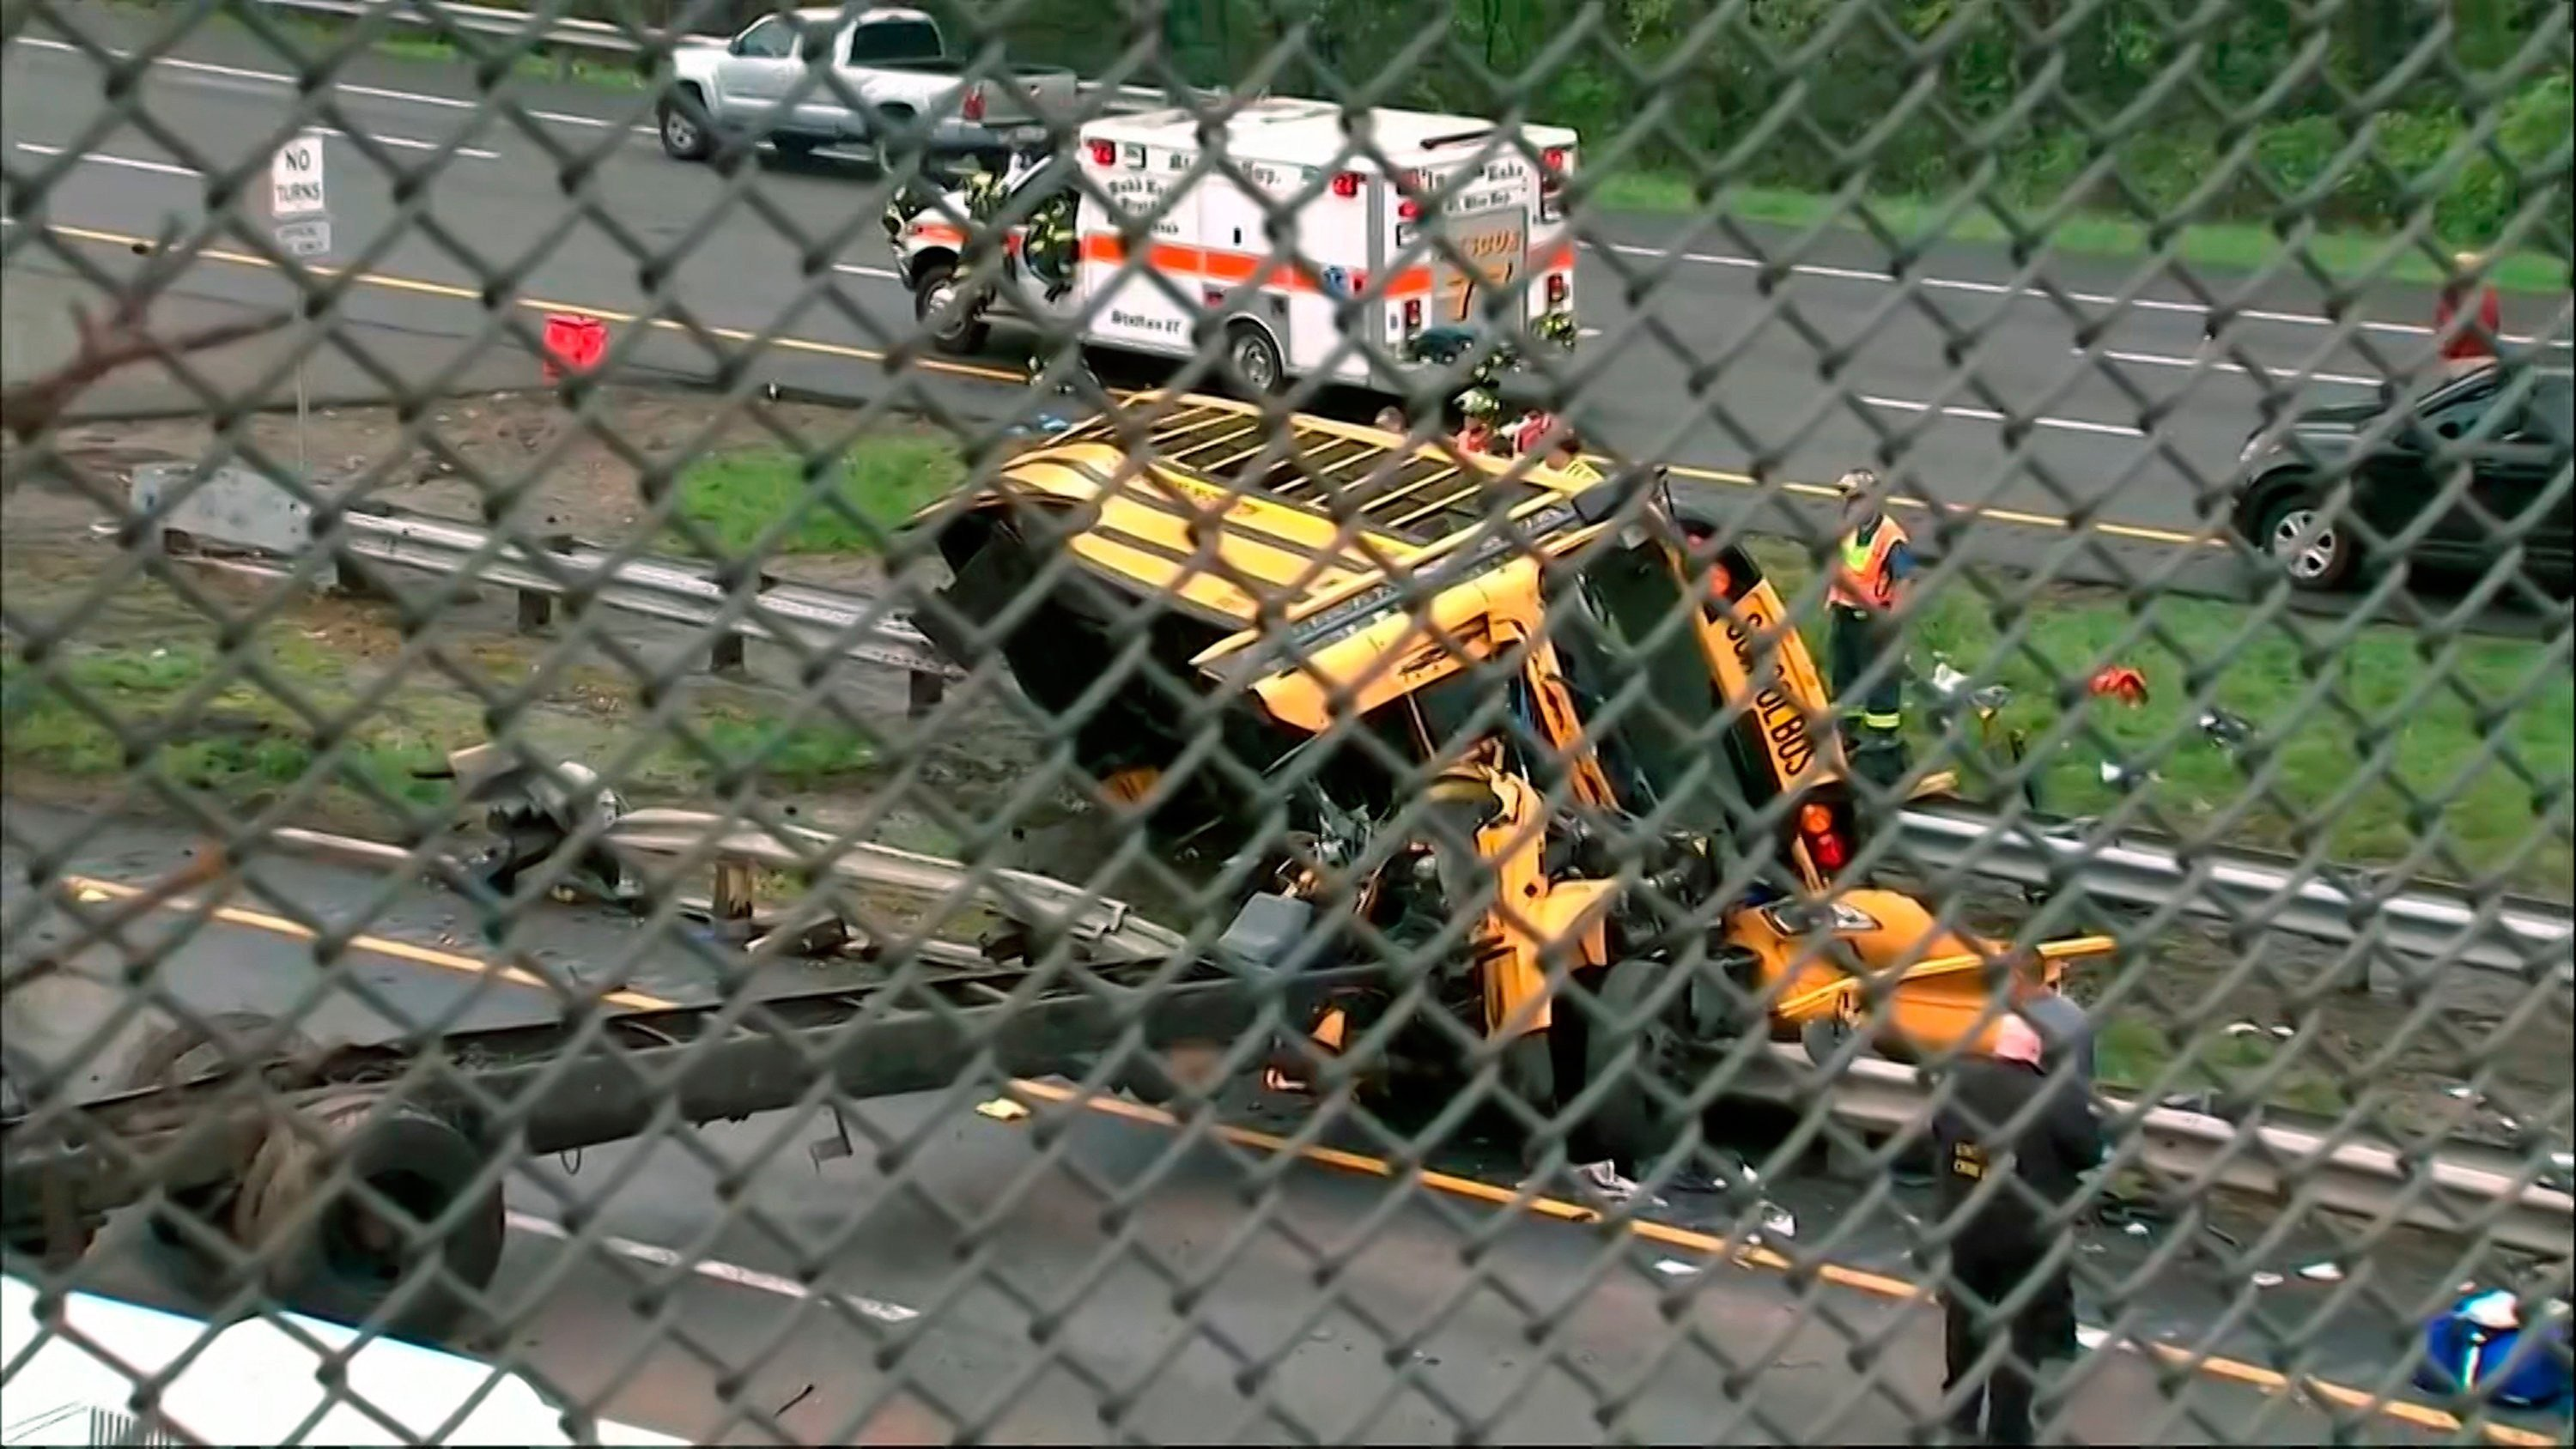 A school bus and a dump truck were involved in a serious accident Thursday morning in Mount Olive Township in Morris County New Jersey according to the township's mayor and a verified tweet from New Jersey State Police